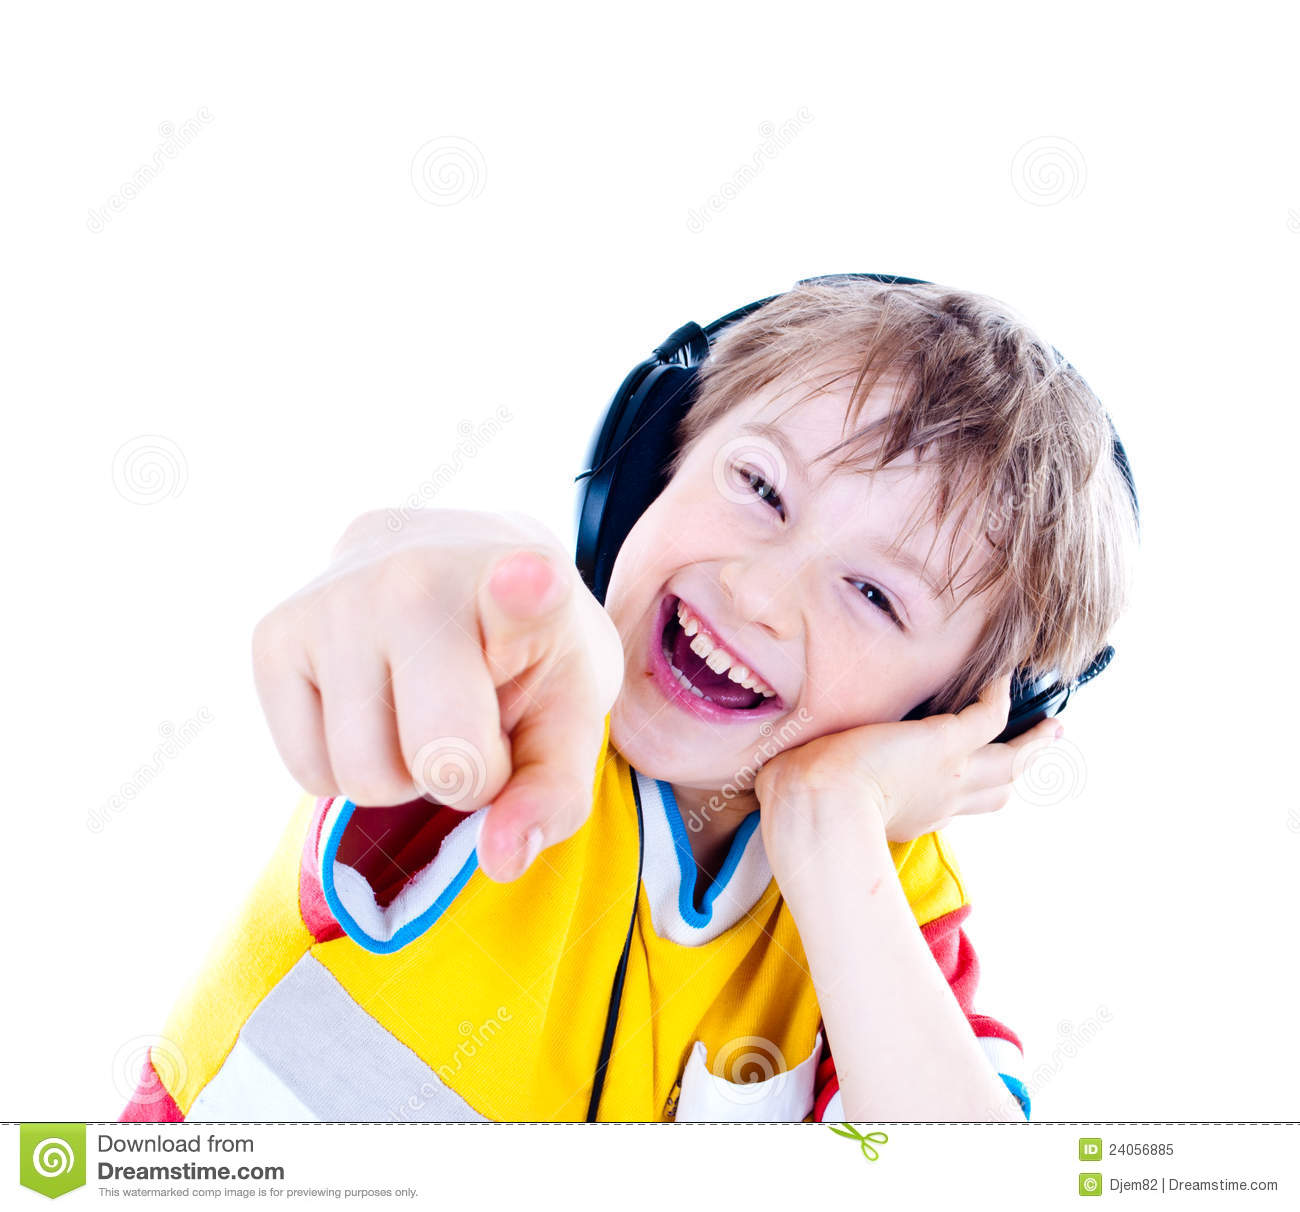 Portrait of a sweet young boy listening to music